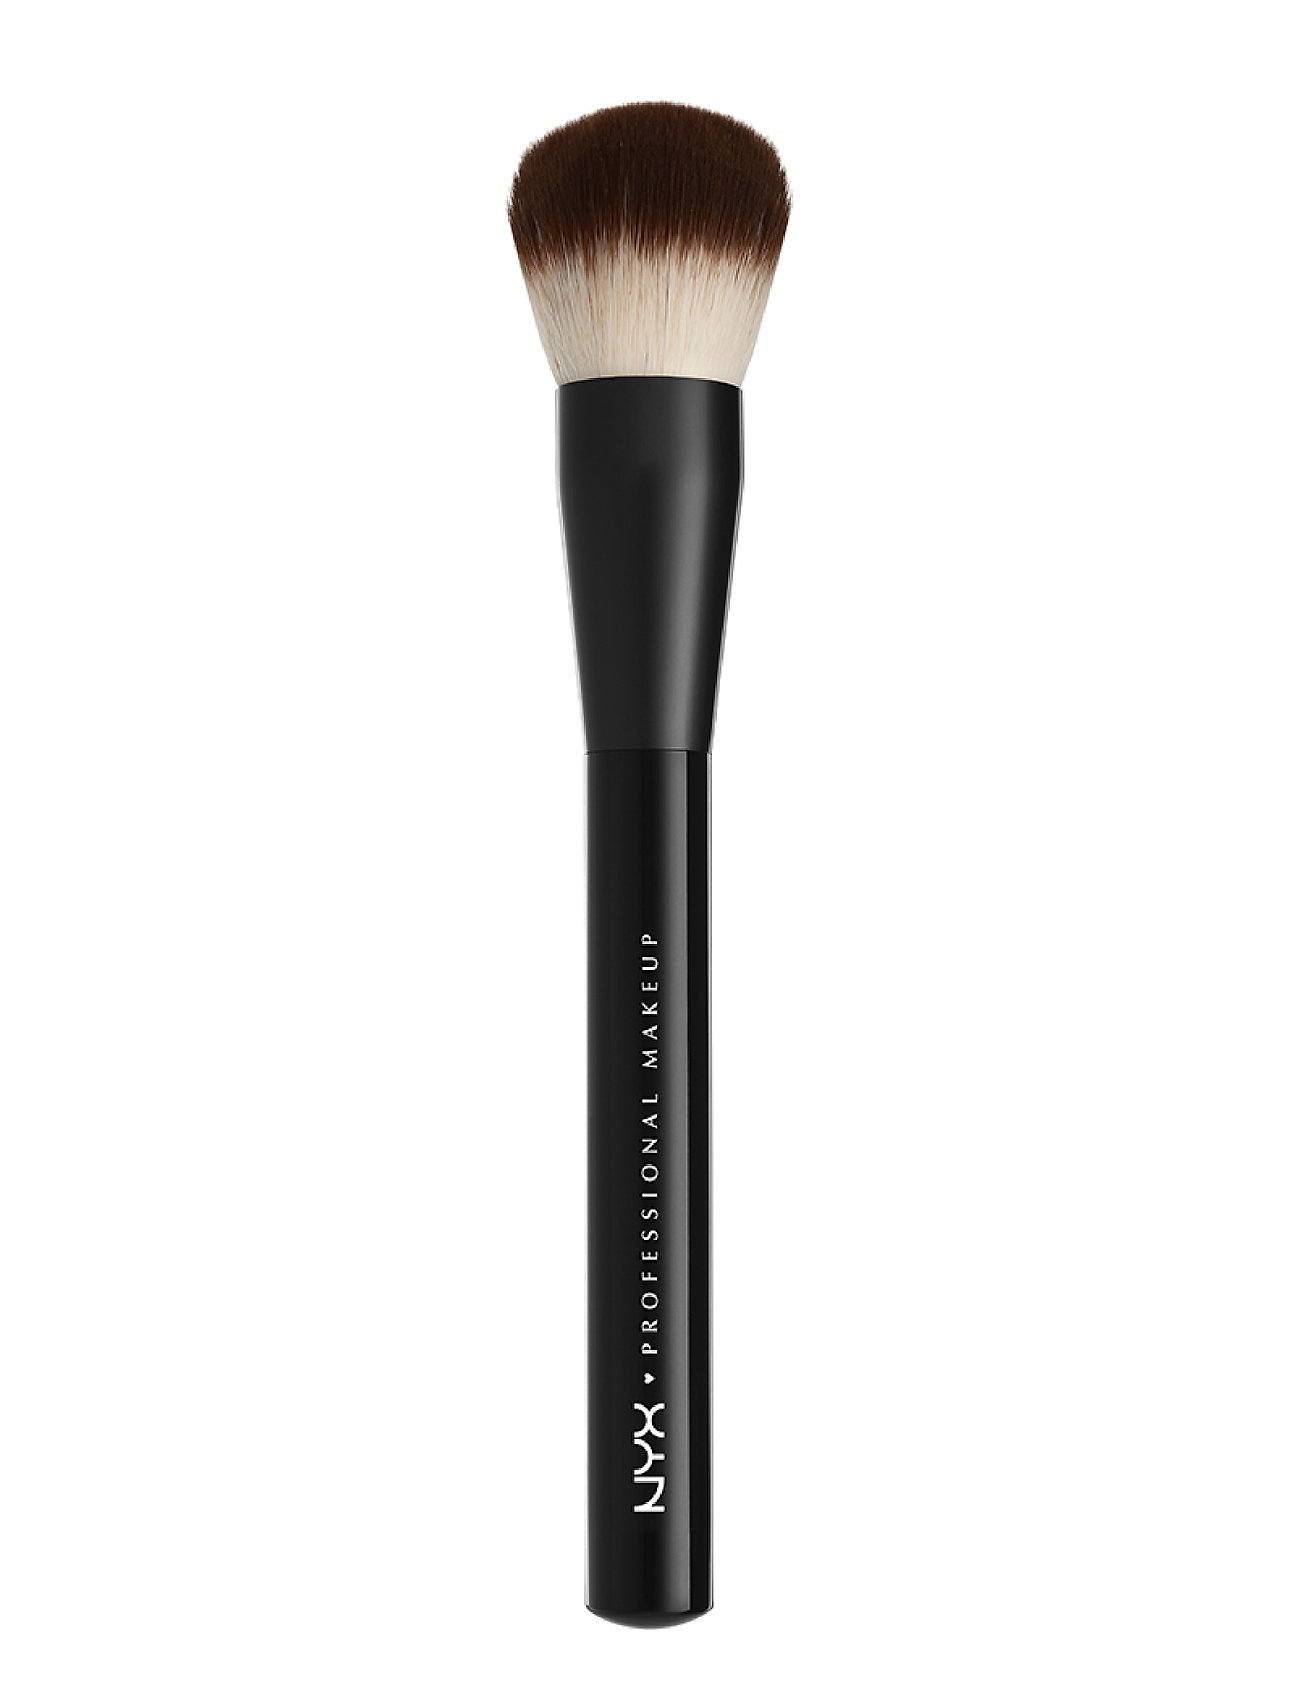 Image of Pro Multi Purp Buffing Brush Beauty WOMEN Makeup Makeup Brushes Face Brushes Nude NYX PROFESSIONAL MAKEUP (3408638975)